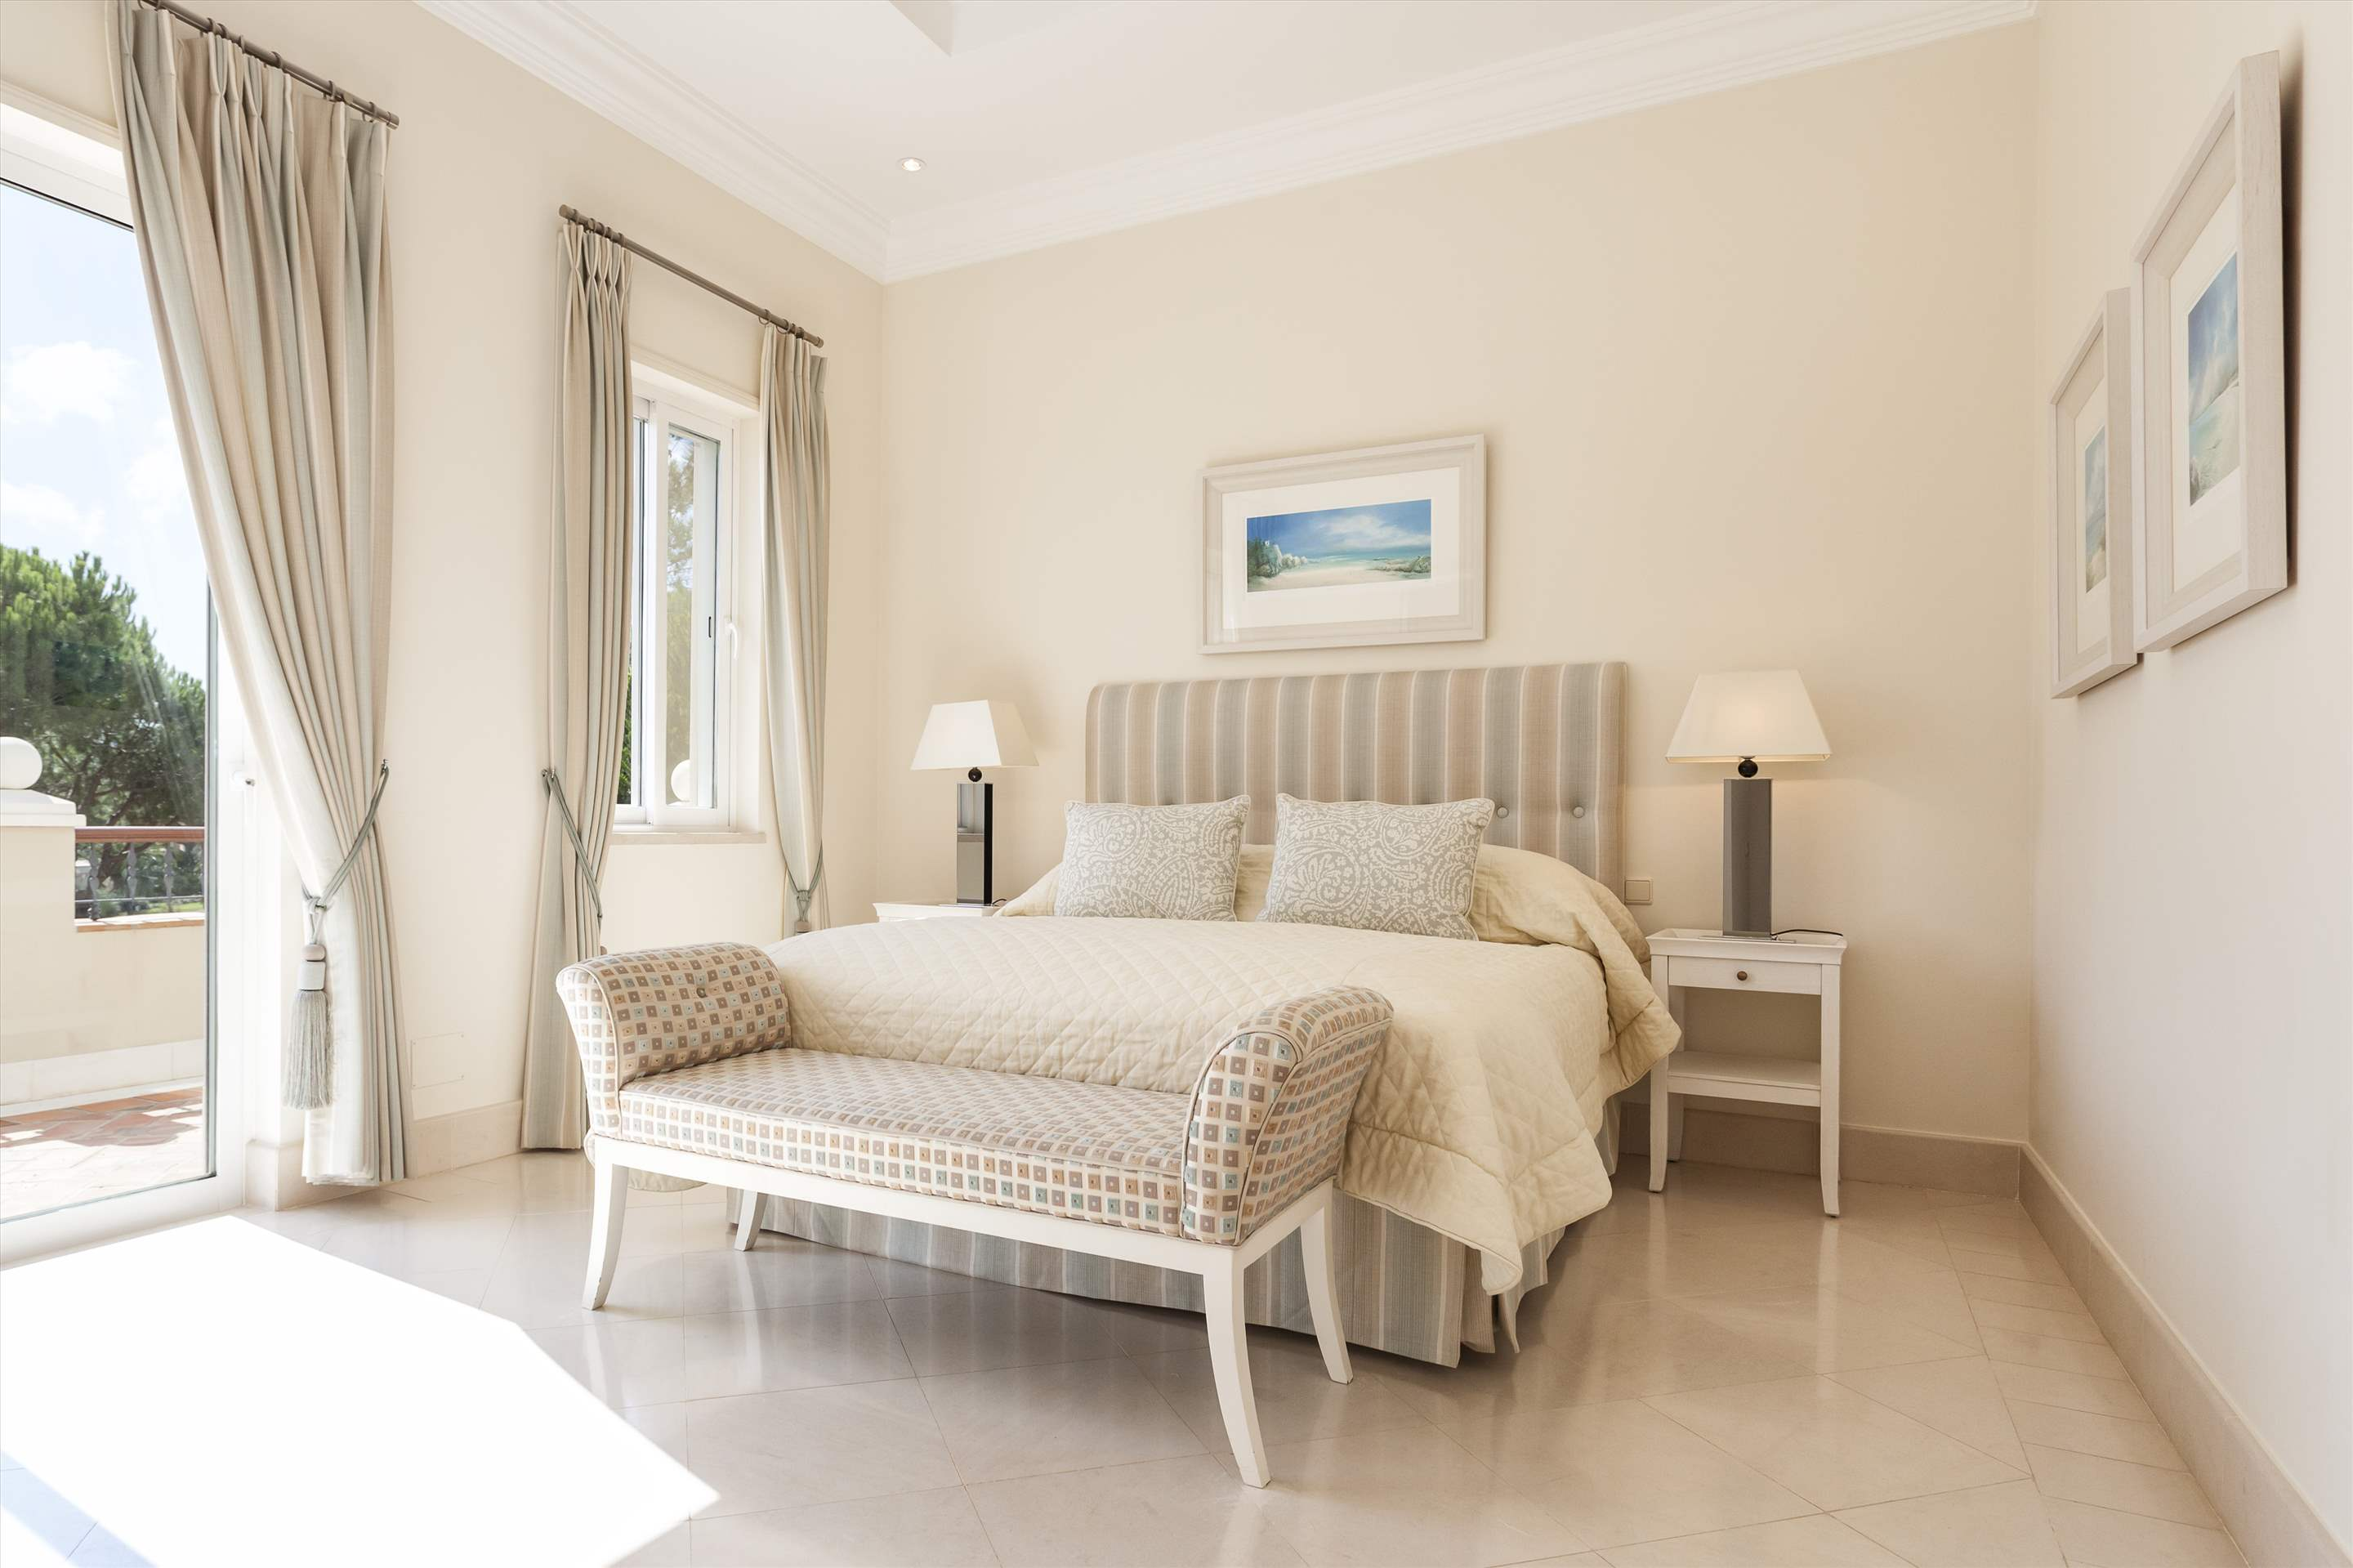 Villa Campainha, 4 Bedroom Rental, 4 bedroom villa in Quinta do Lago, Algarve Photo #19